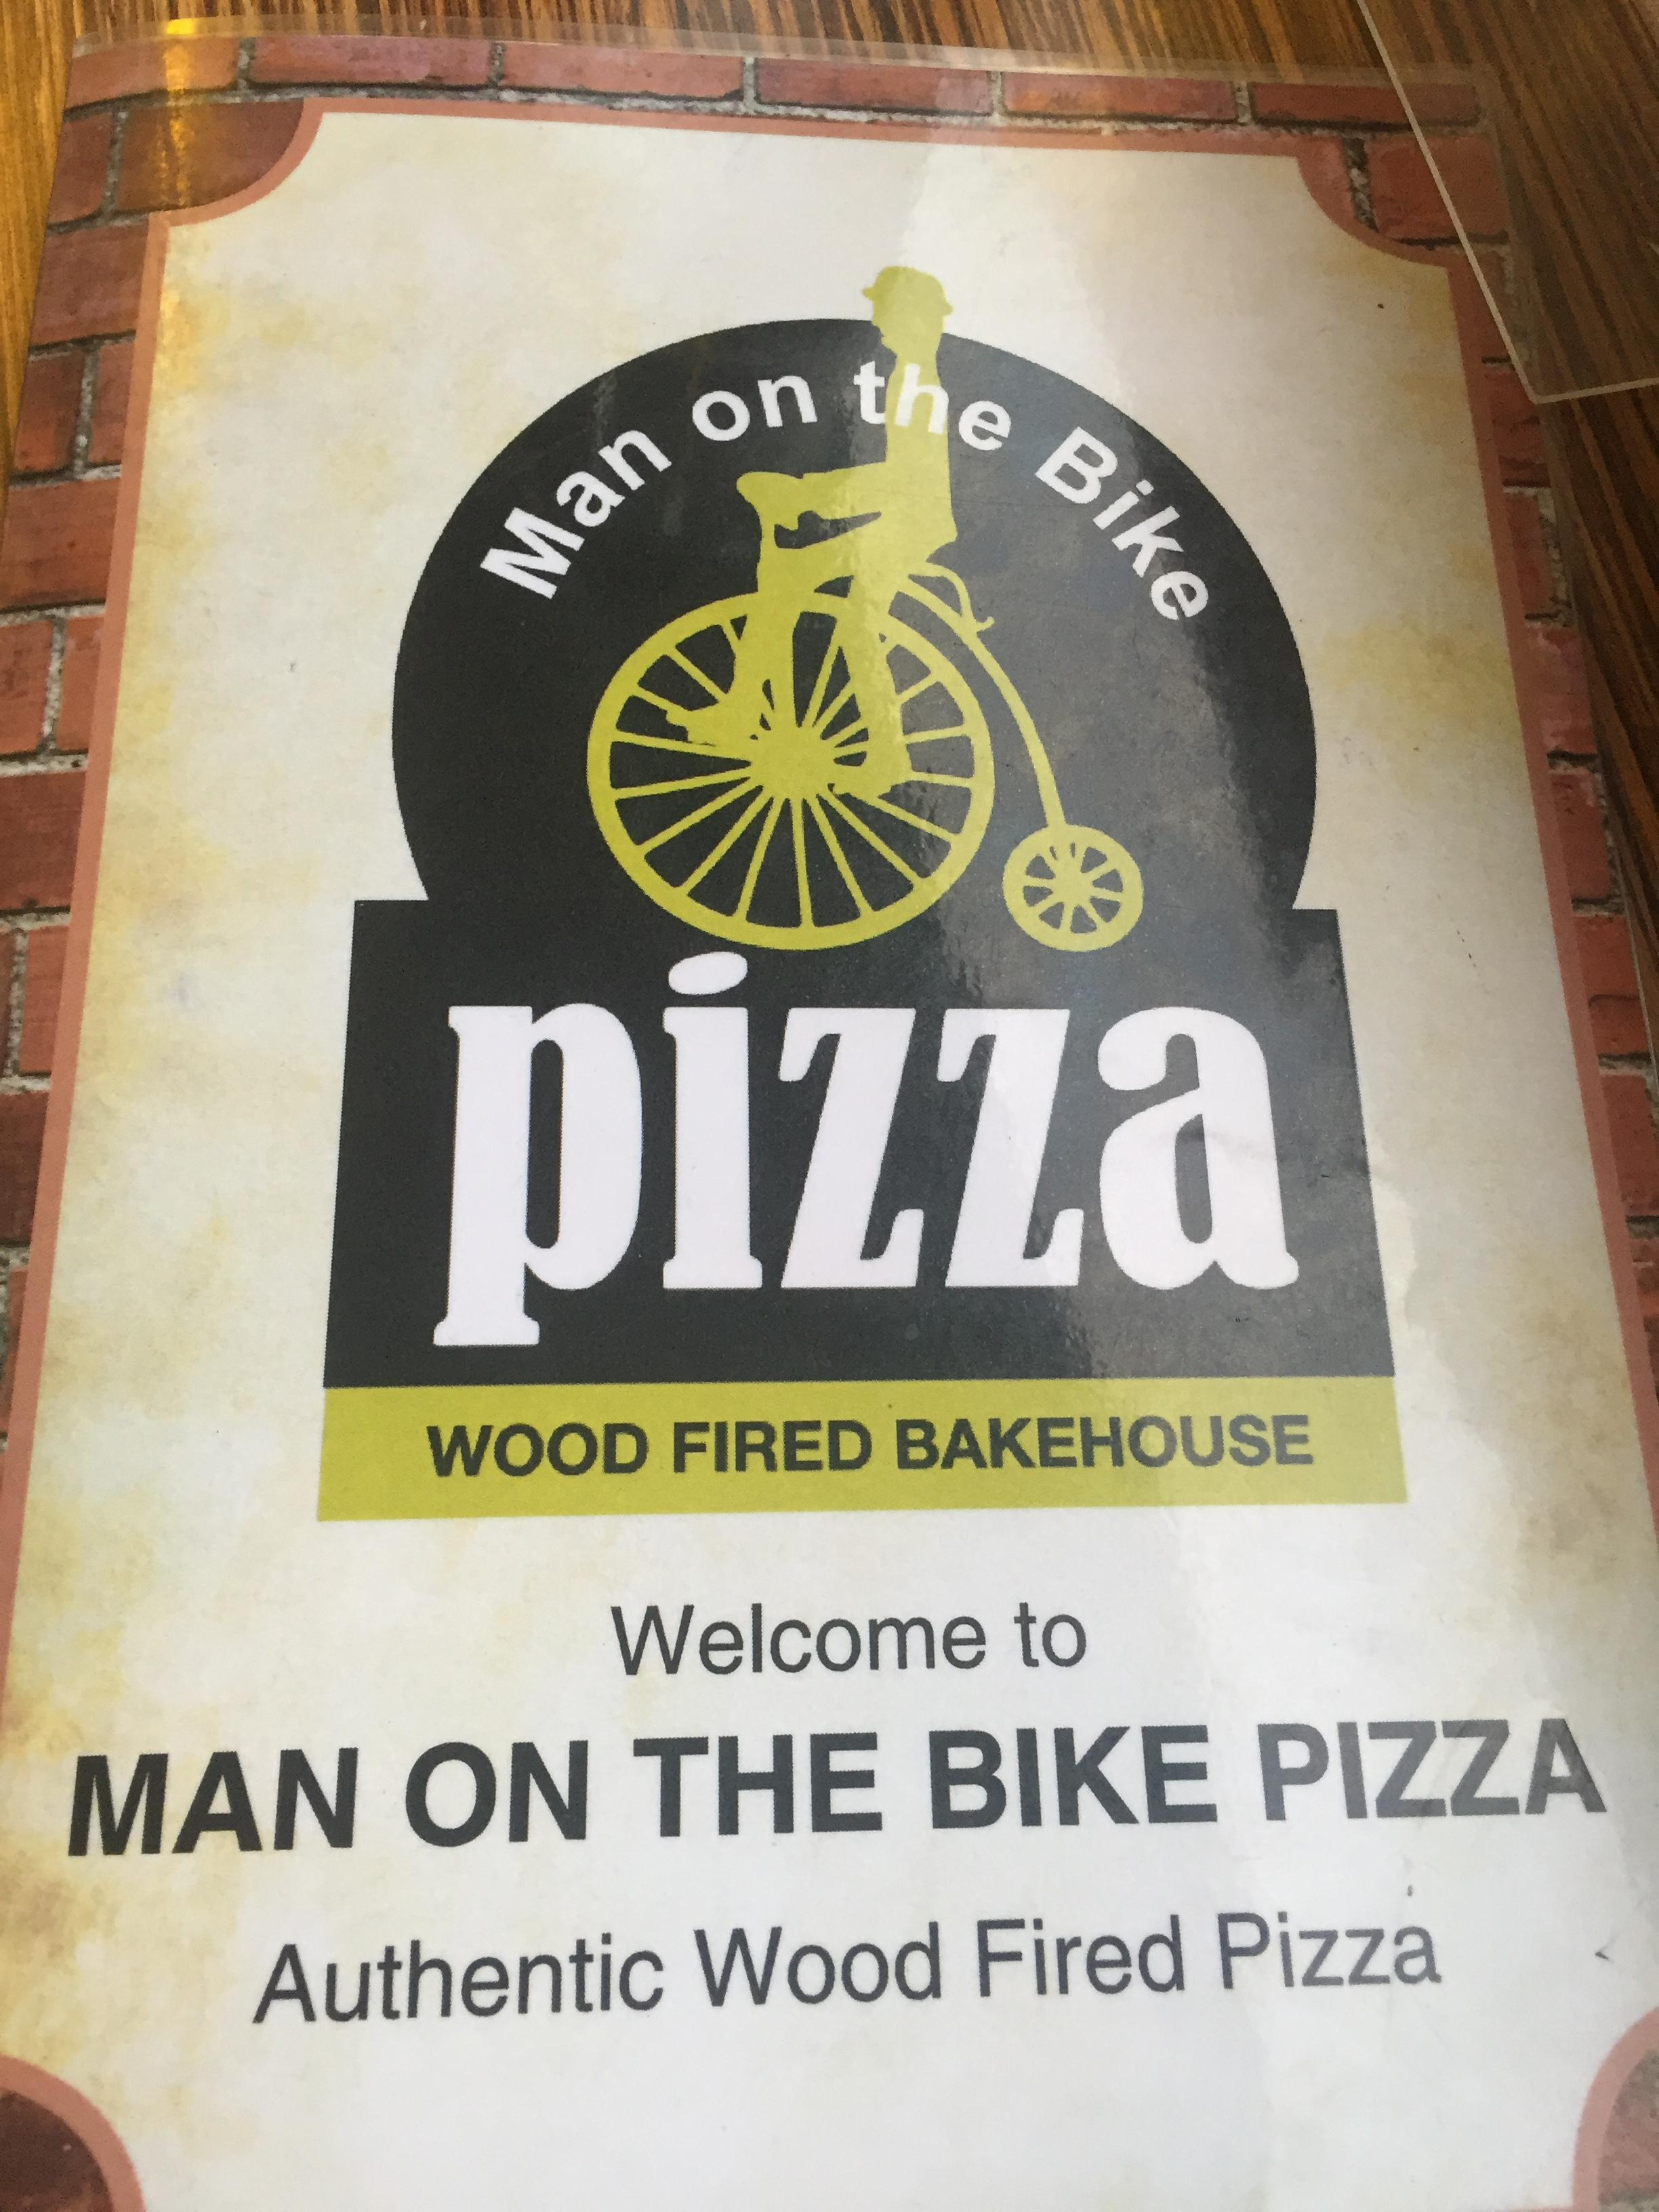 Man On the Bike Pizza